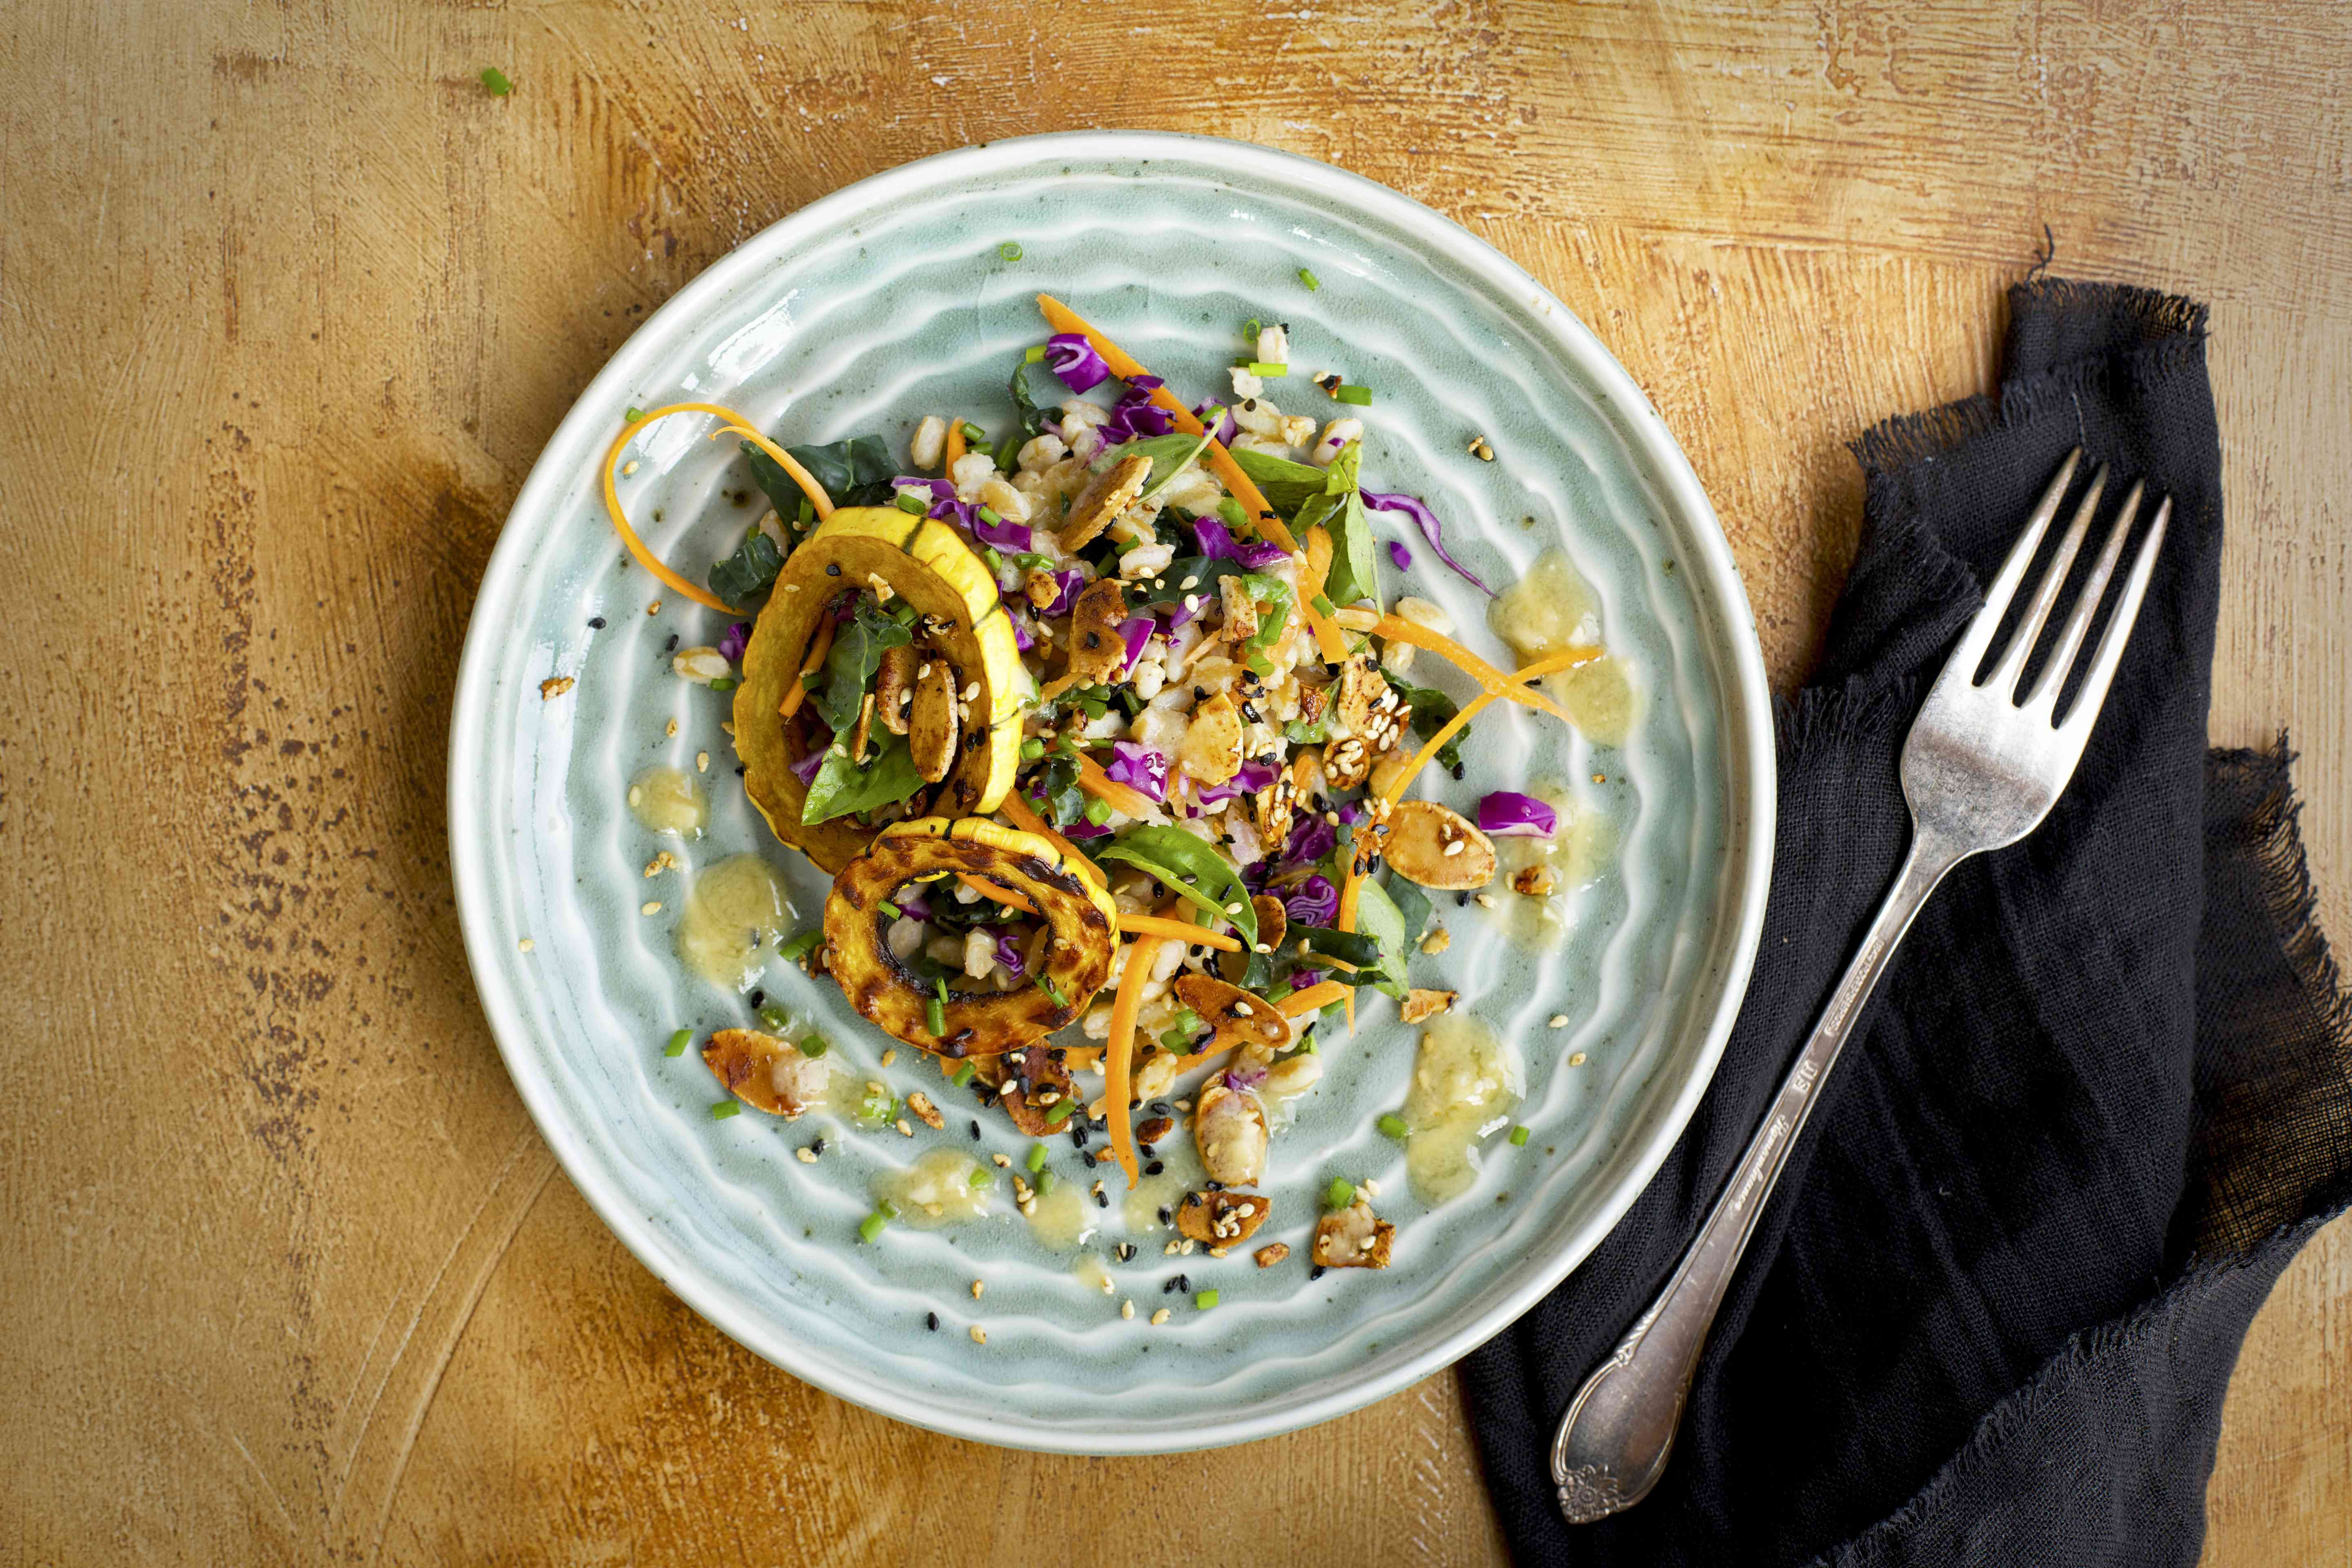 Sesame Farro Salad with Delicata Squash served with dressing, toasted nuts, and chives